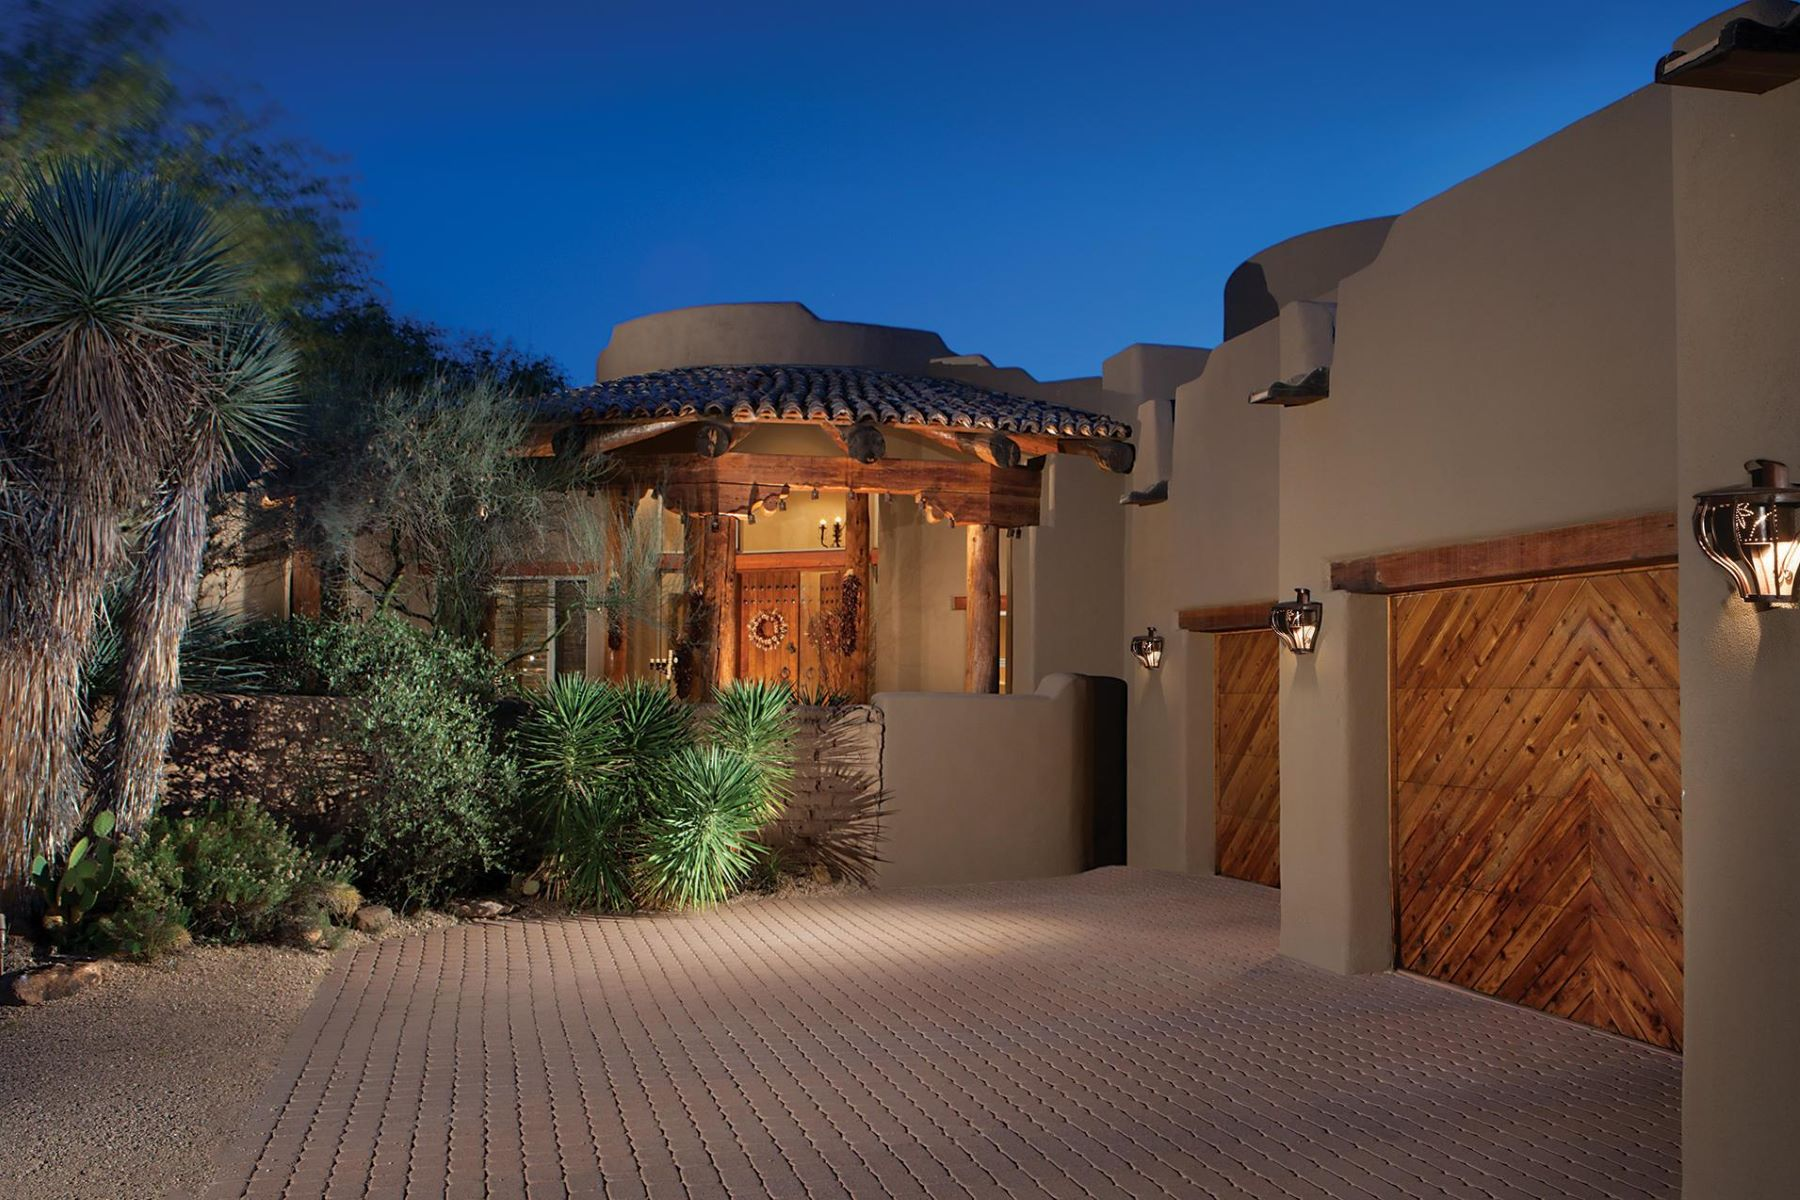 단독 가정 주택 용 매매 에 Enchanting Santa fe home in Sincuidados 8400 E Dixileta Dr 145, Scottsdale, 아리조나, 85266 미국